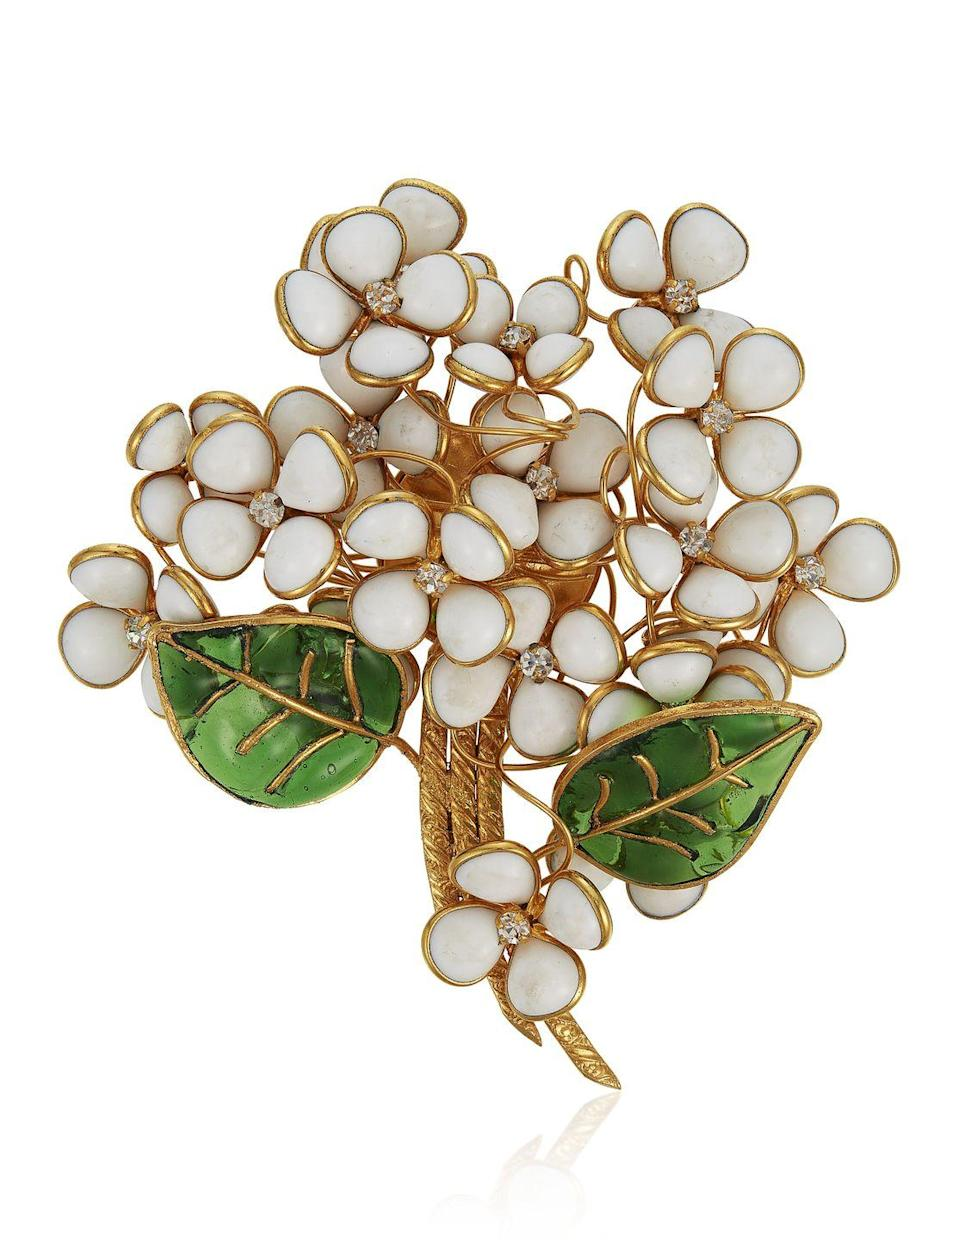 <p>This dainty floral brooch is estimated to be worth $500 to $700.</p>